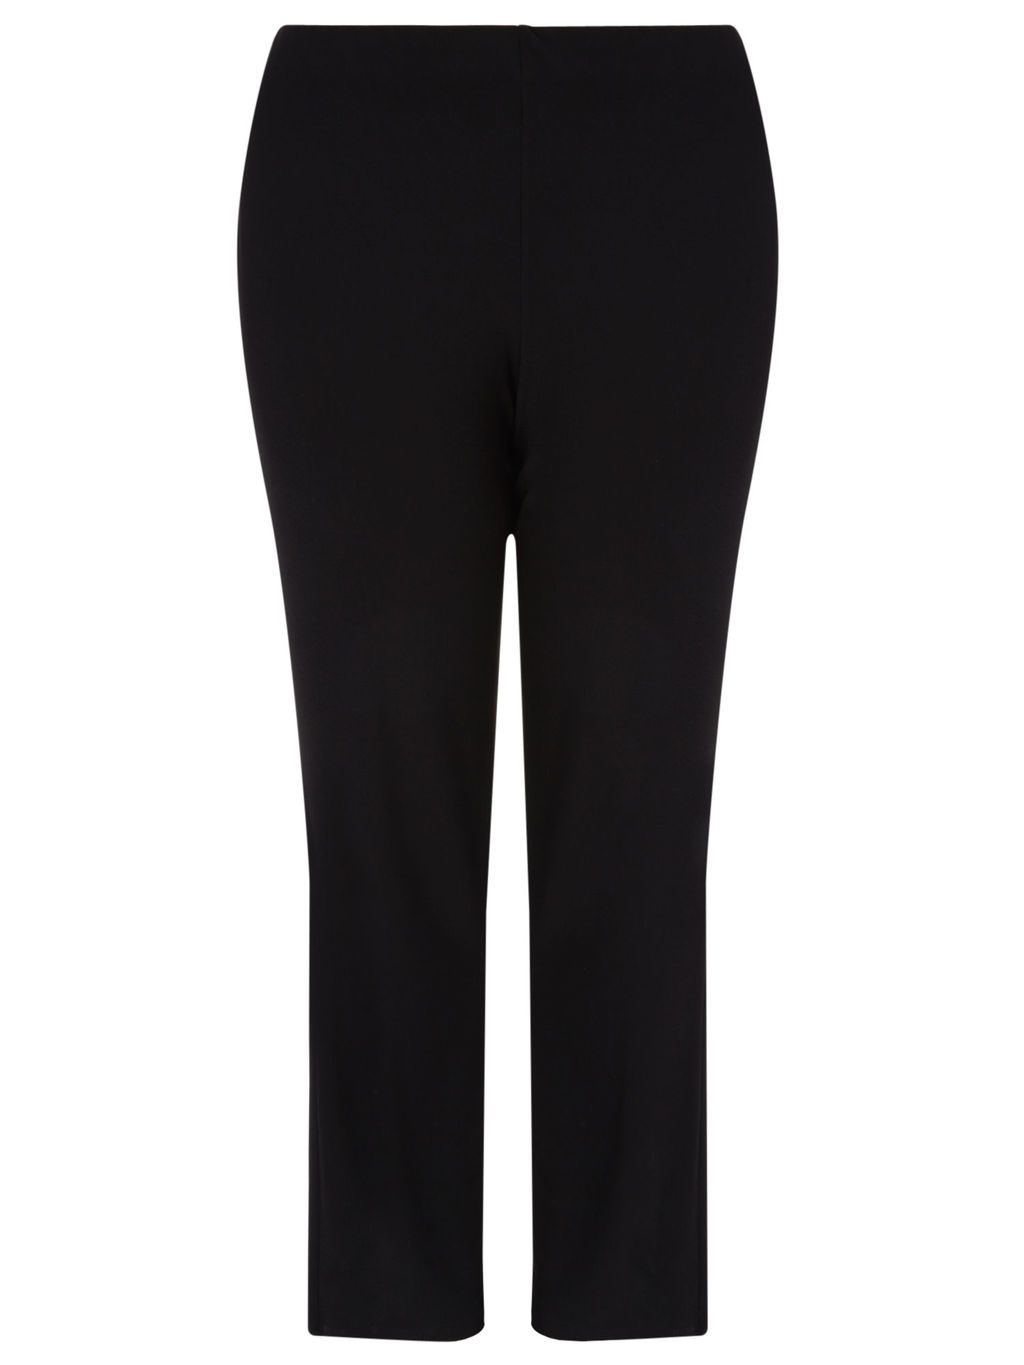 Jersey Trousers, Black - length: standard; pattern: plain; waist: mid/regular rise; predominant colour: black; occasions: work; fibres: polyester/polyamide - stretch; fit: straight leg; pattern type: fabric; texture group: jersey - stretchy/drapey; style: standard; season: a/w 2015; wardrobe: basic